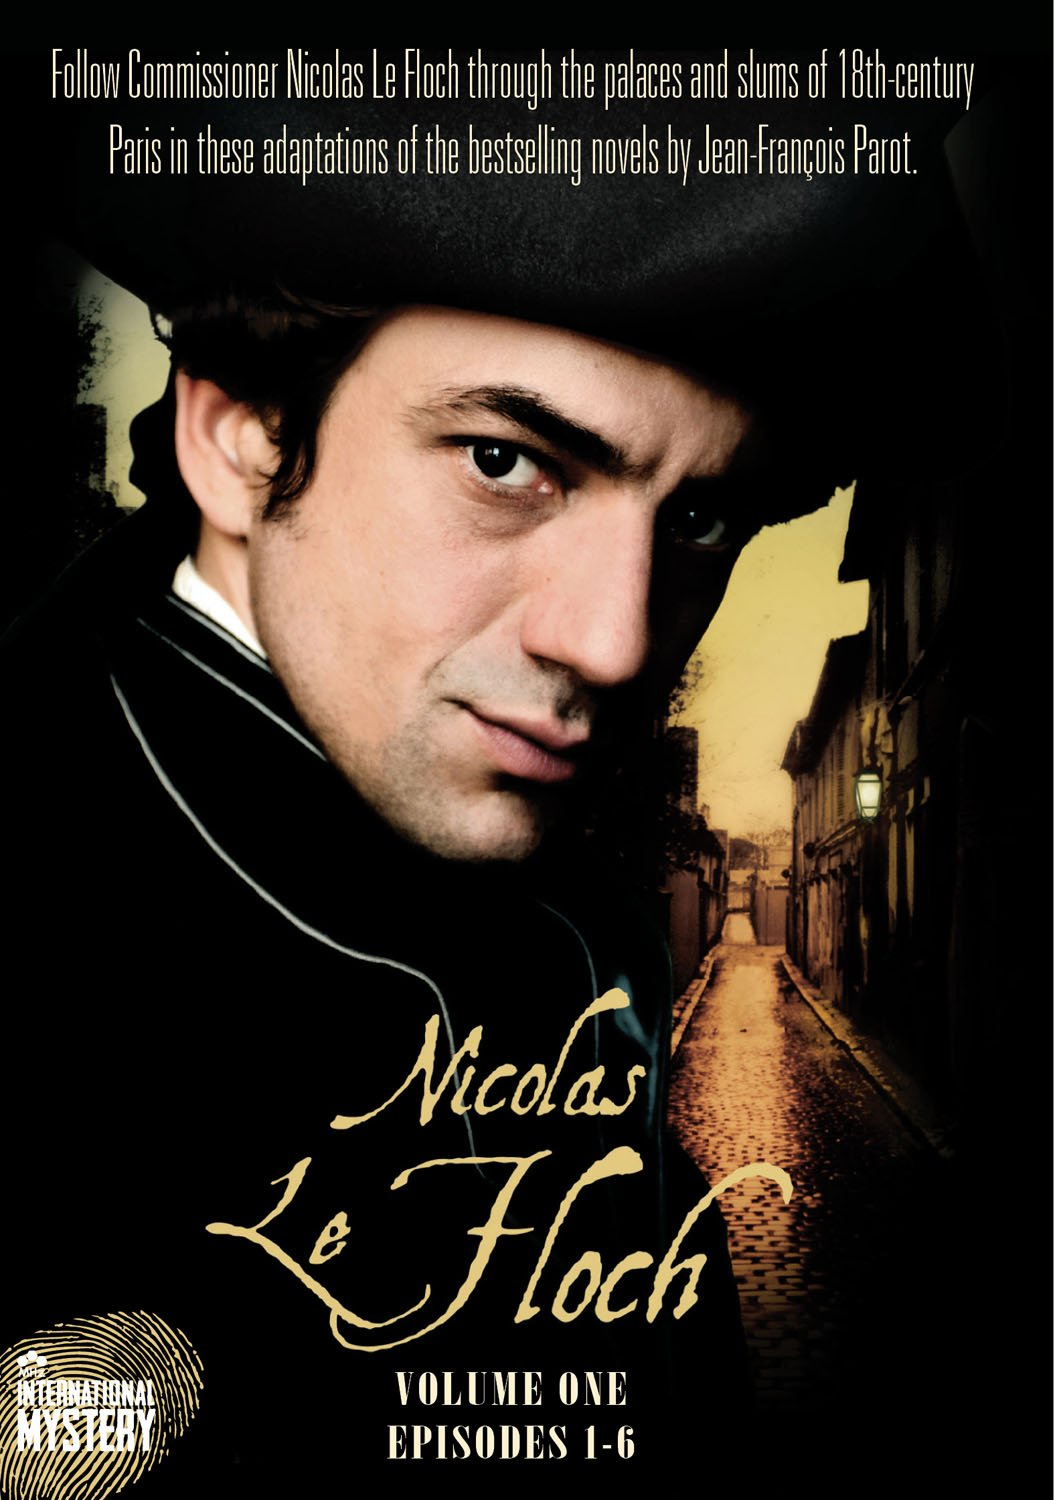 Nicolas Le Floch (Boxed Set, Subtitled, Widescreen, 4PC)